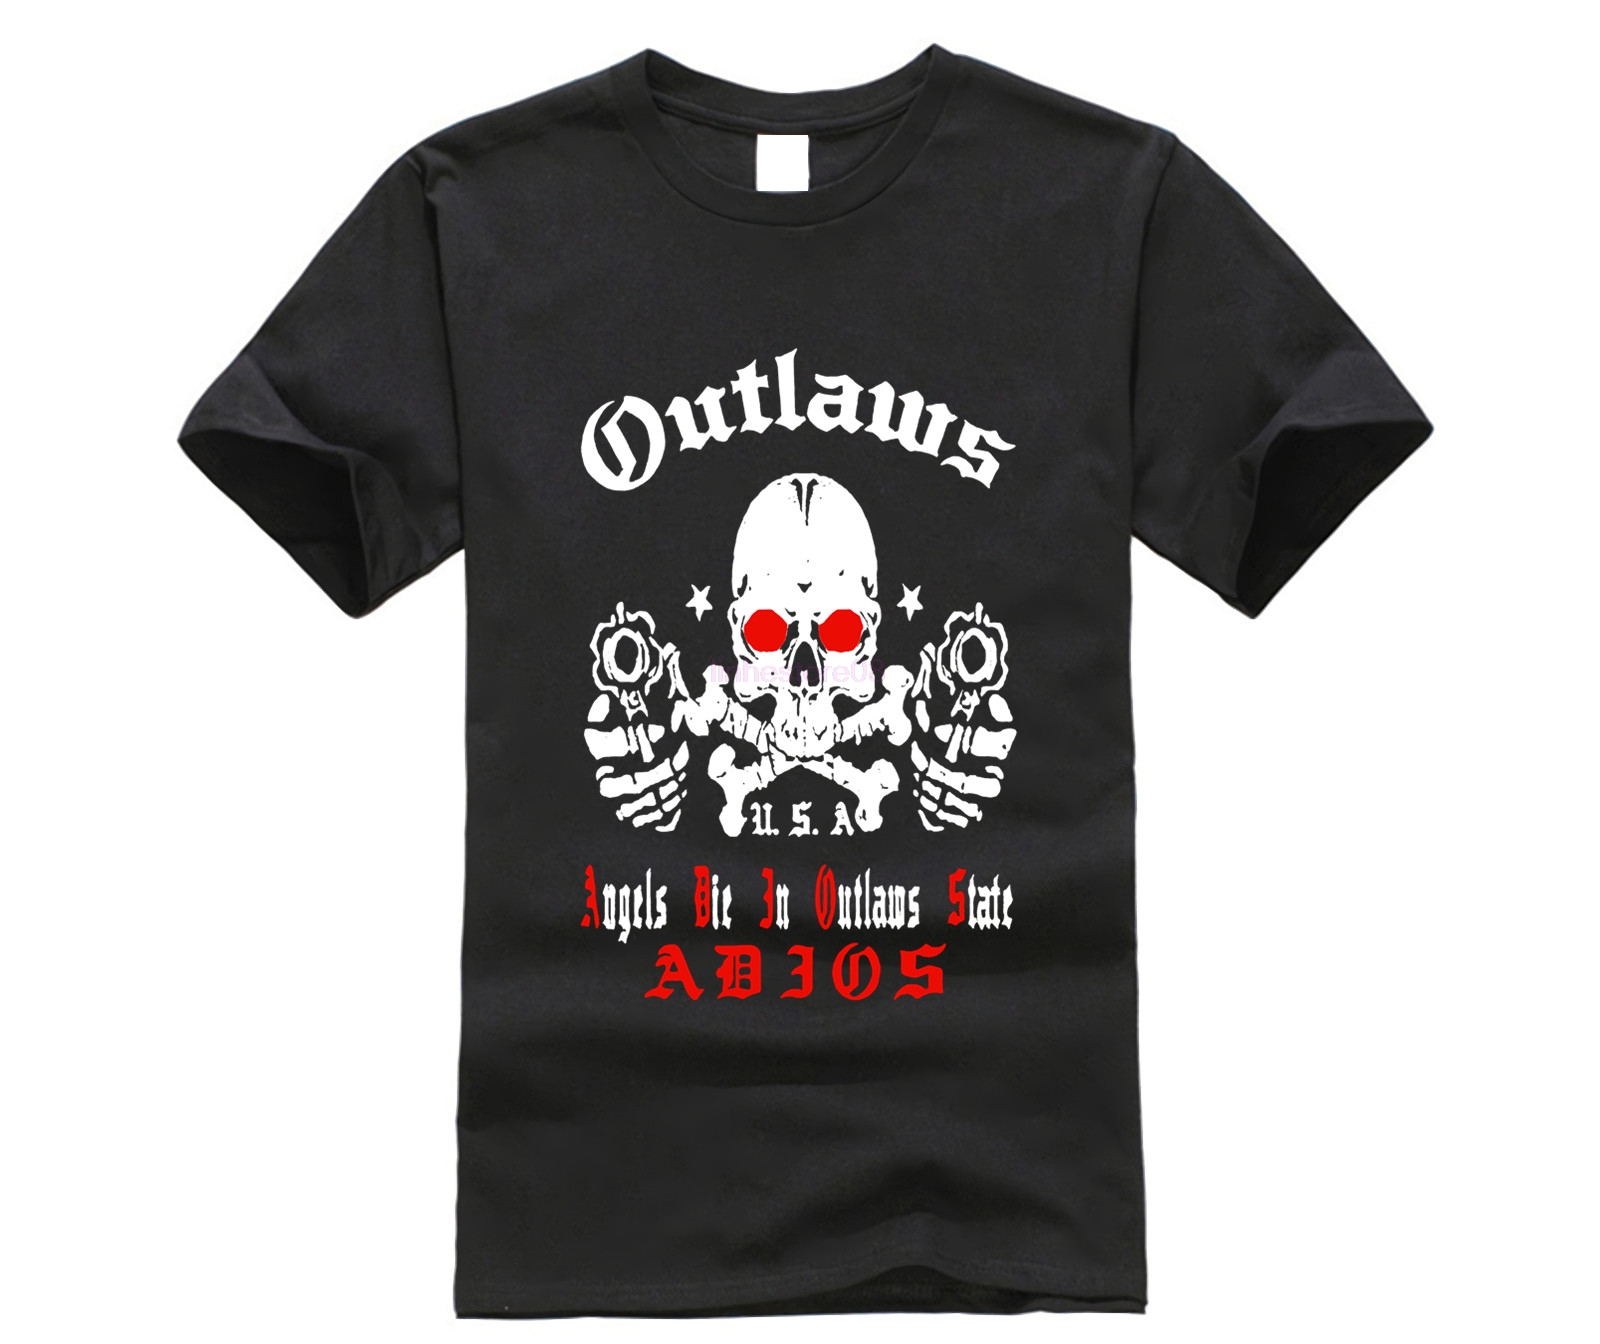 Adios Outlaws <font><b>MC</b></font> <font><b>T</b></font> <font><b>Shirt</b></font> Black Angels Die in Outlaws State Tee Size S-3XL Men and Women Print Casual Piece Cotton Short Tops image